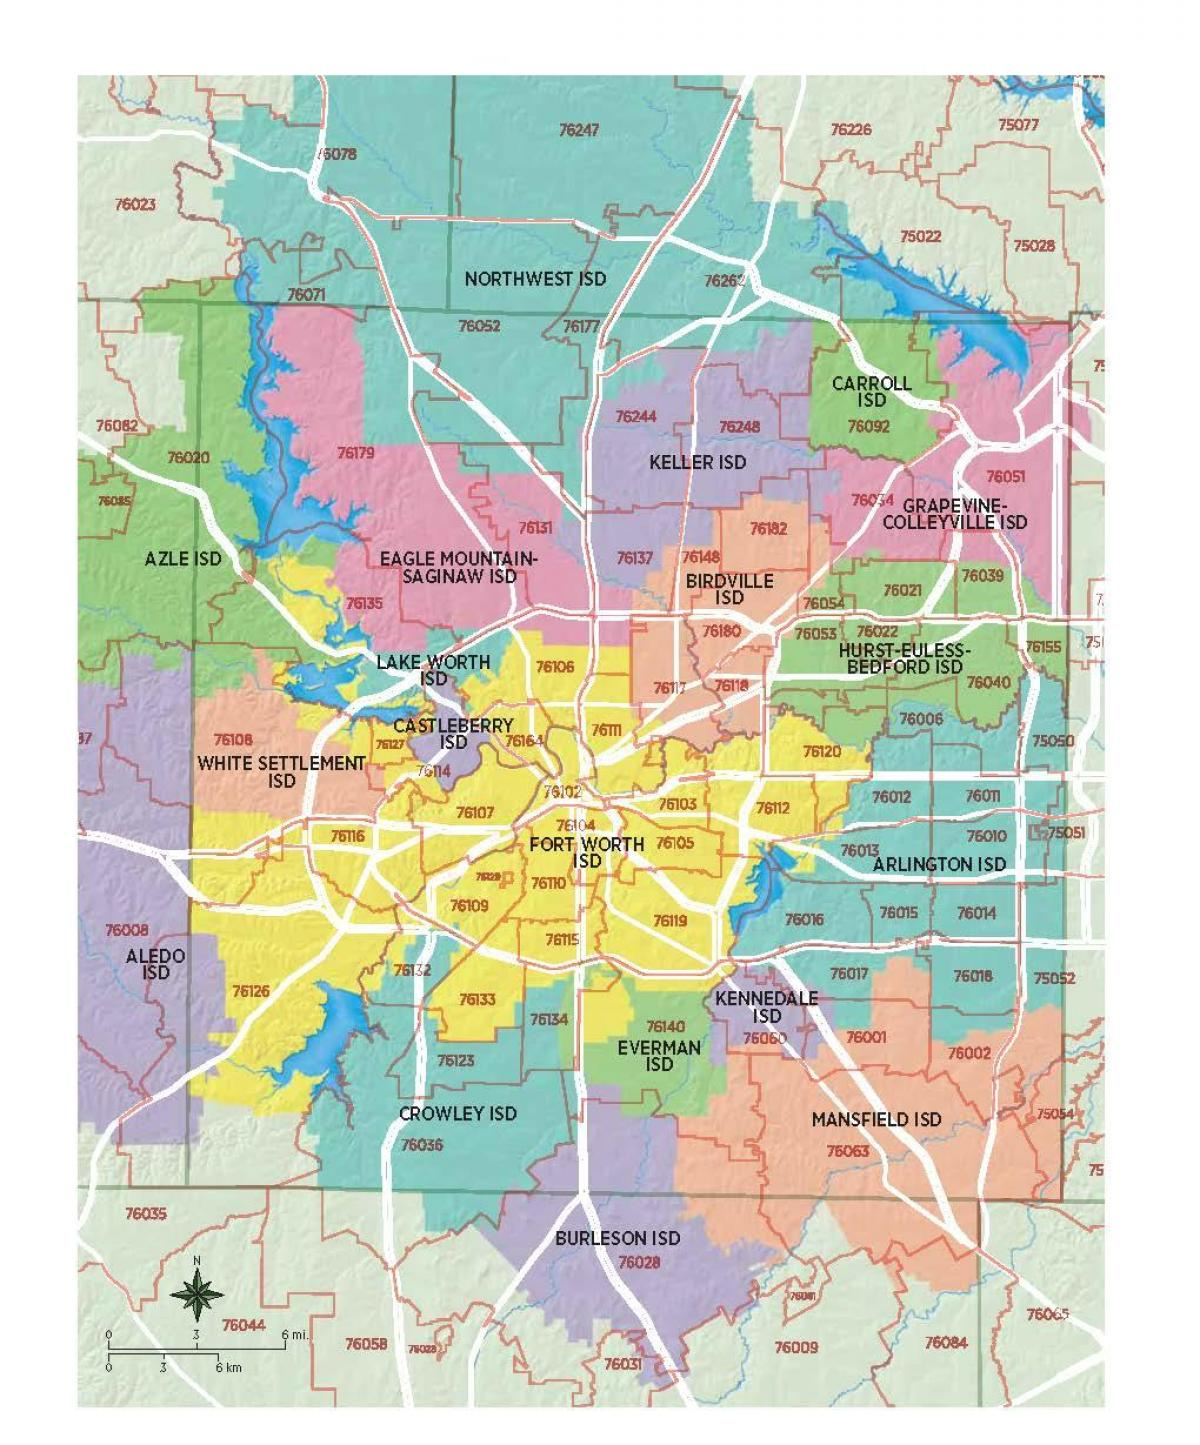 Fort Worth School District Map - Fort Worth School Map (Texas - Usa) - Texas School District Map